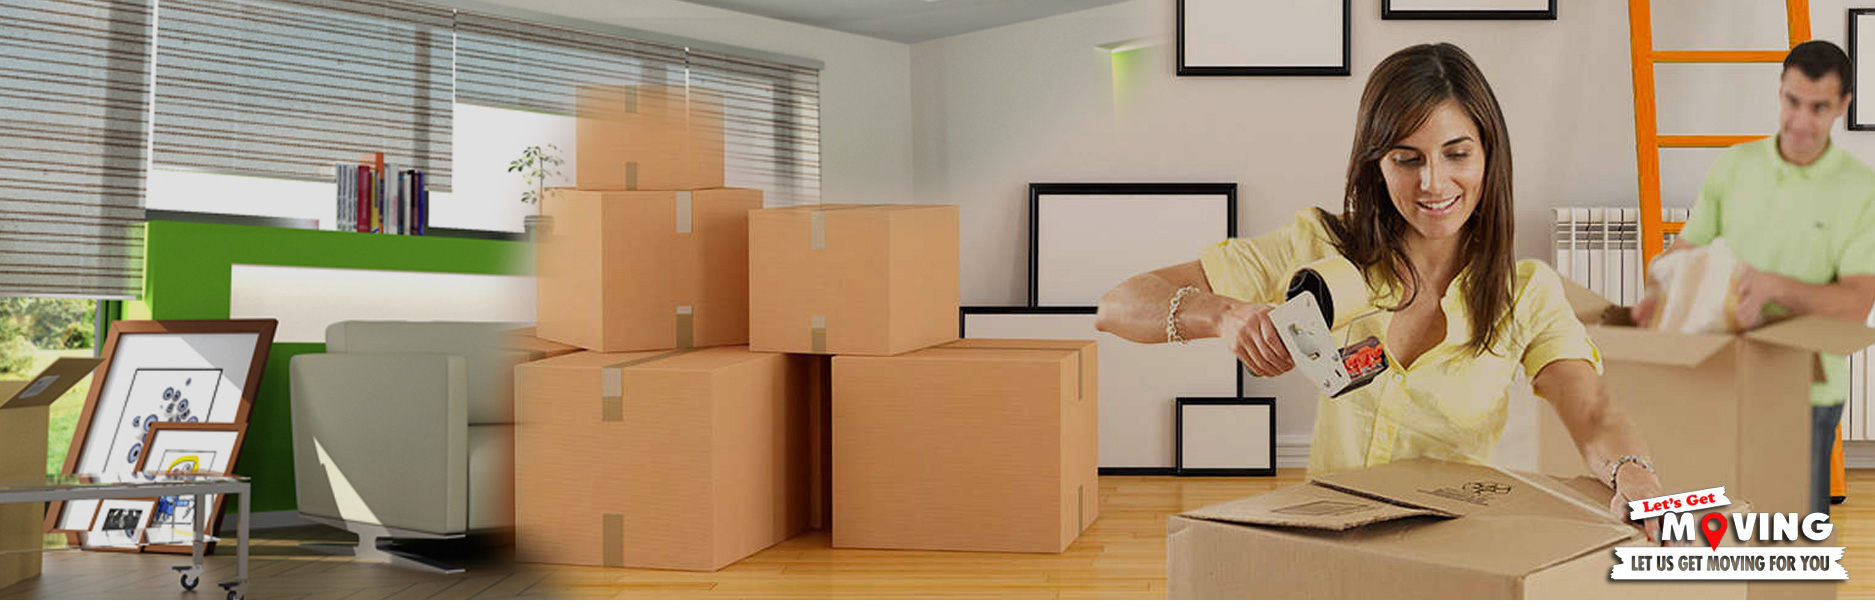 4 Unique Facts About The Professional Movers